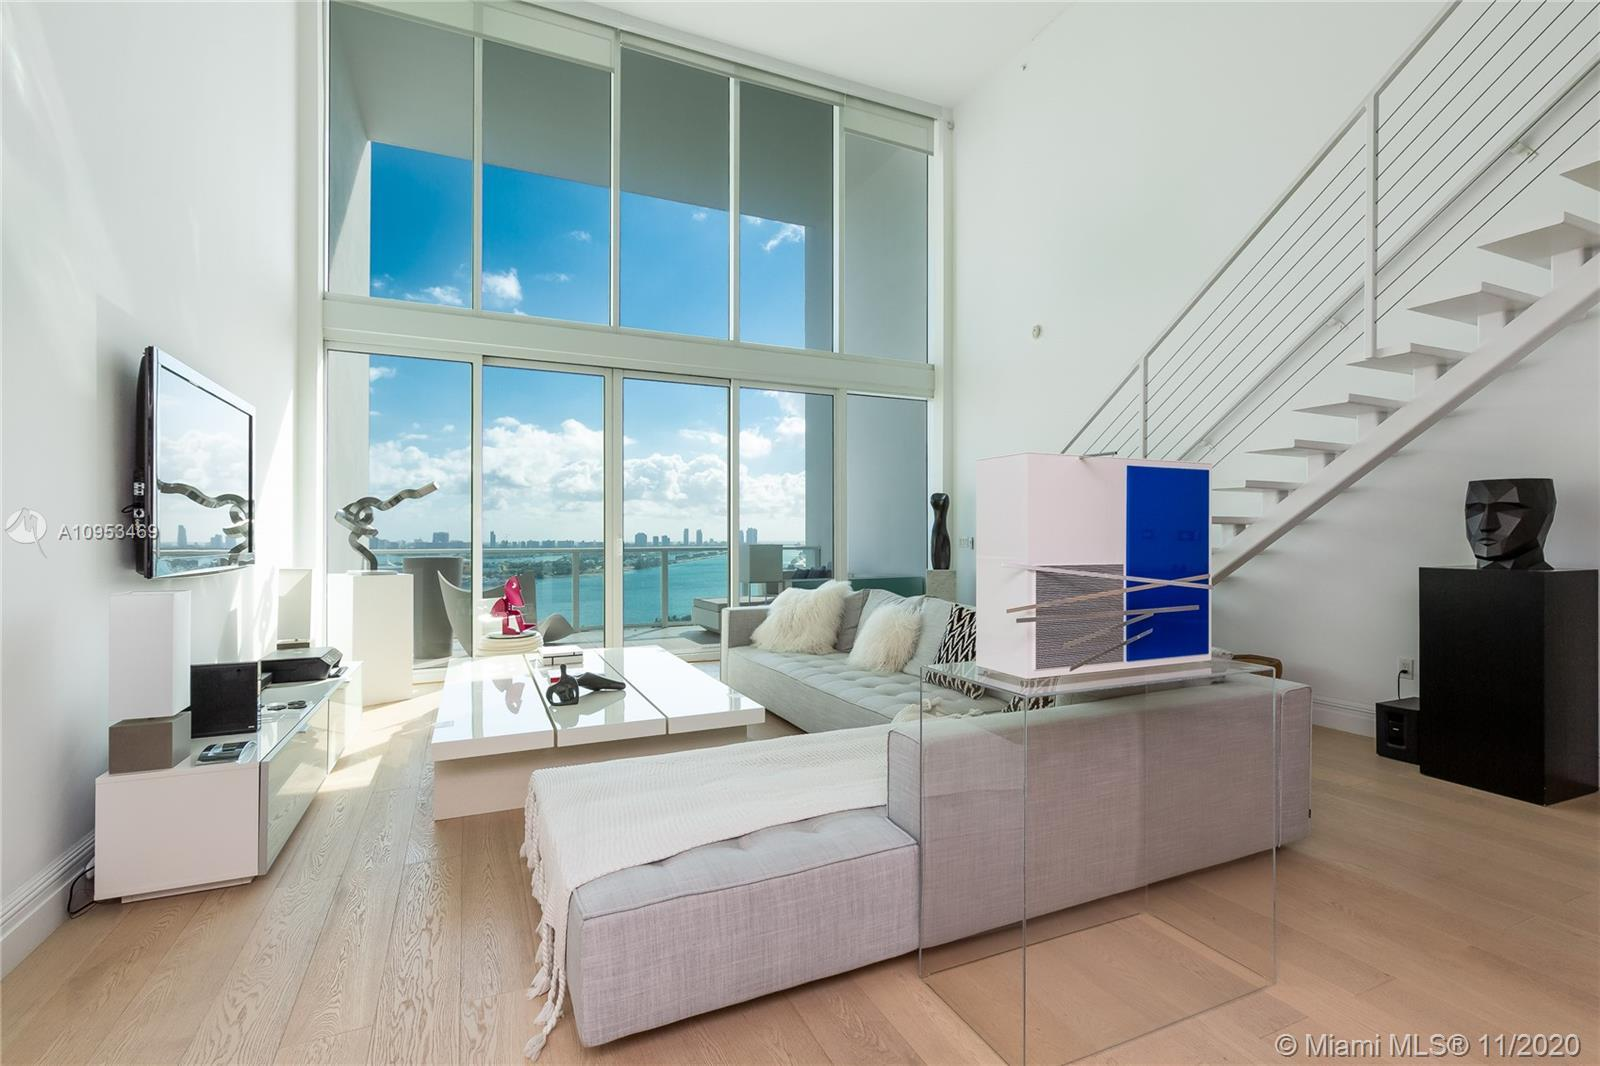 FURNISHED !! Amazing 2 story loft in Ten Museum Park with a fabulous panoramic view of Biscayne Bay